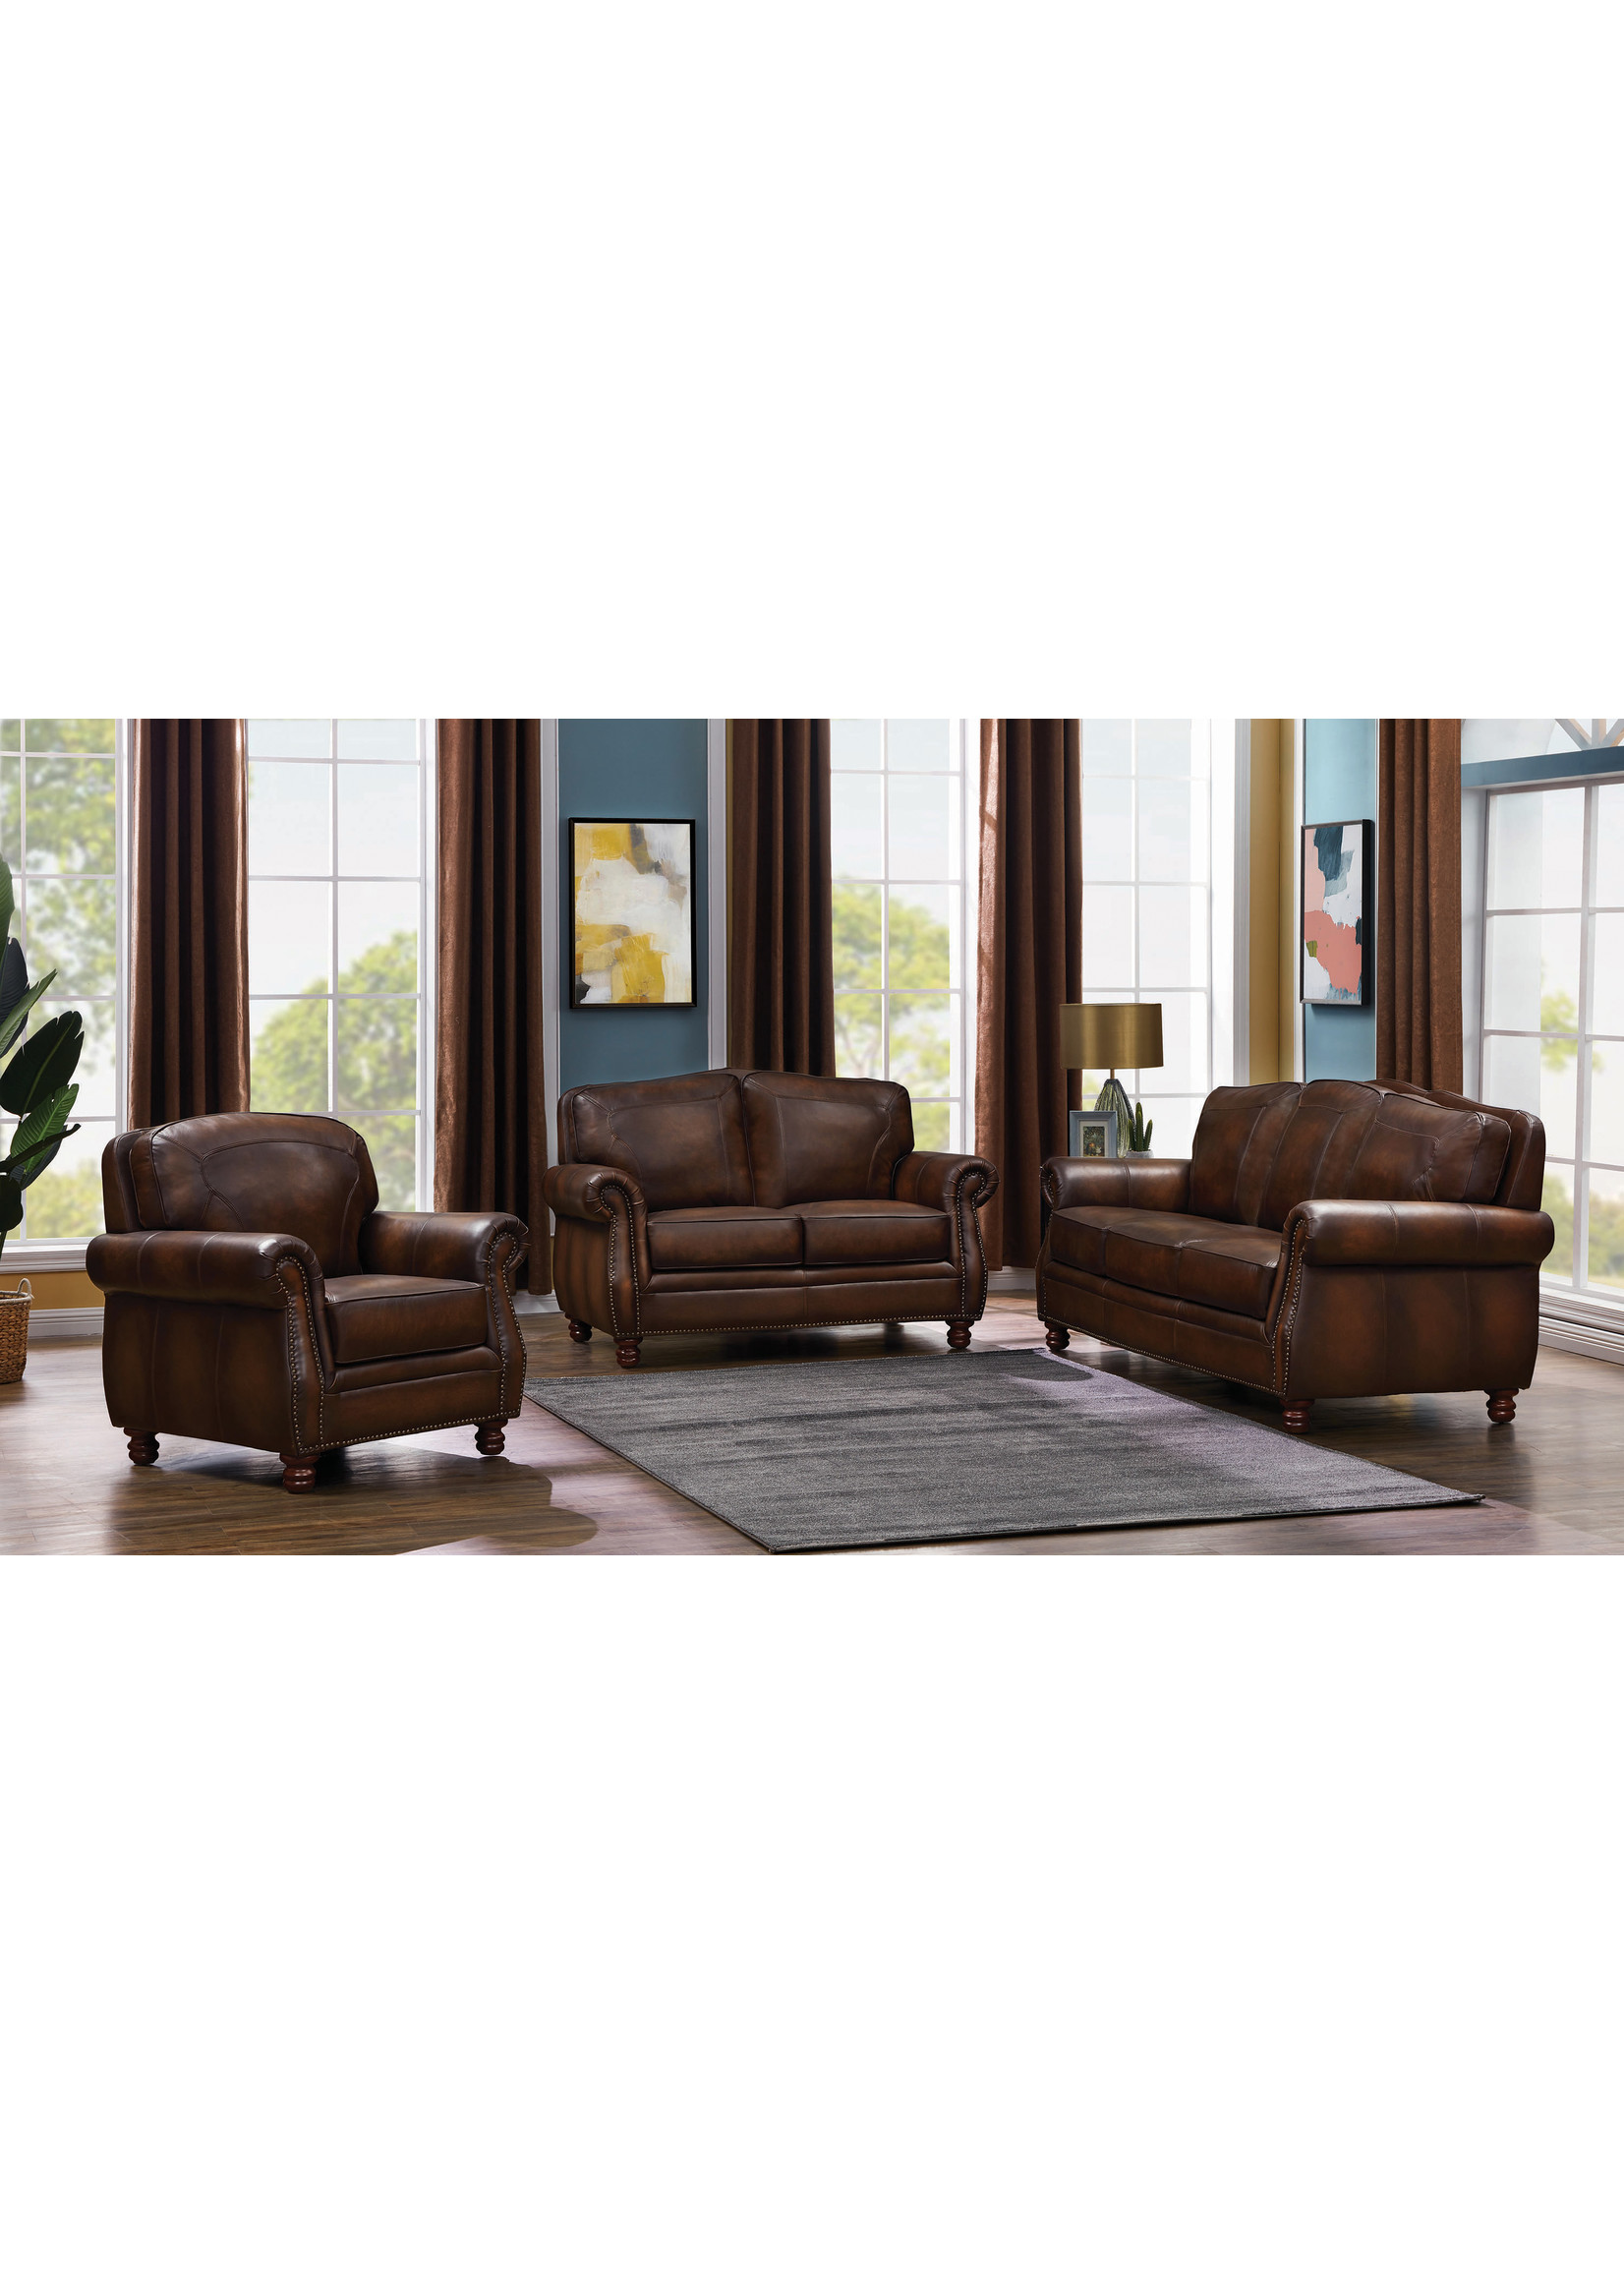 COASTER 503982 LOVESEAT HAND RUBBED LEATHER MONTBROOK BROWN